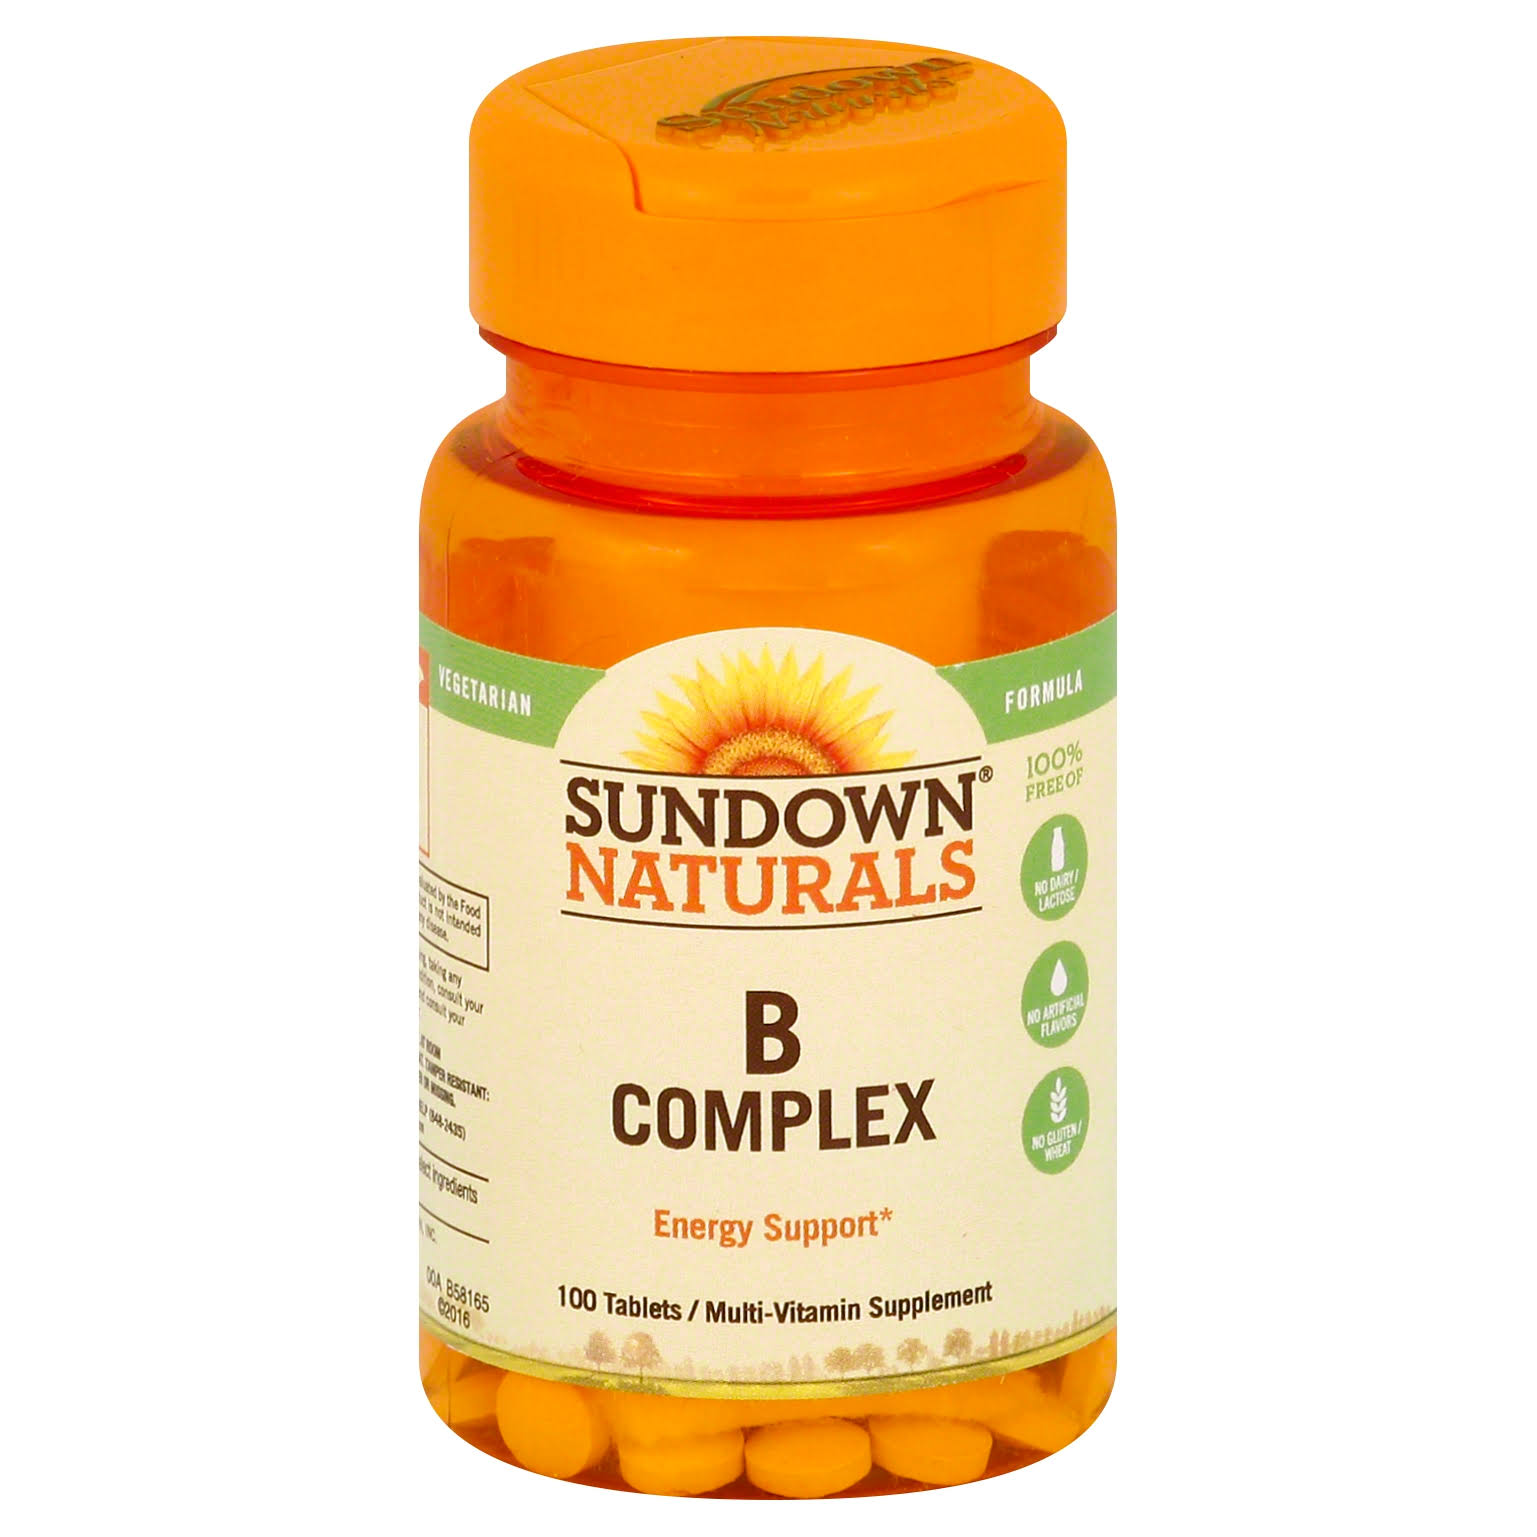 Sundown Naturals B Complex Dietary Supplement - 100ct